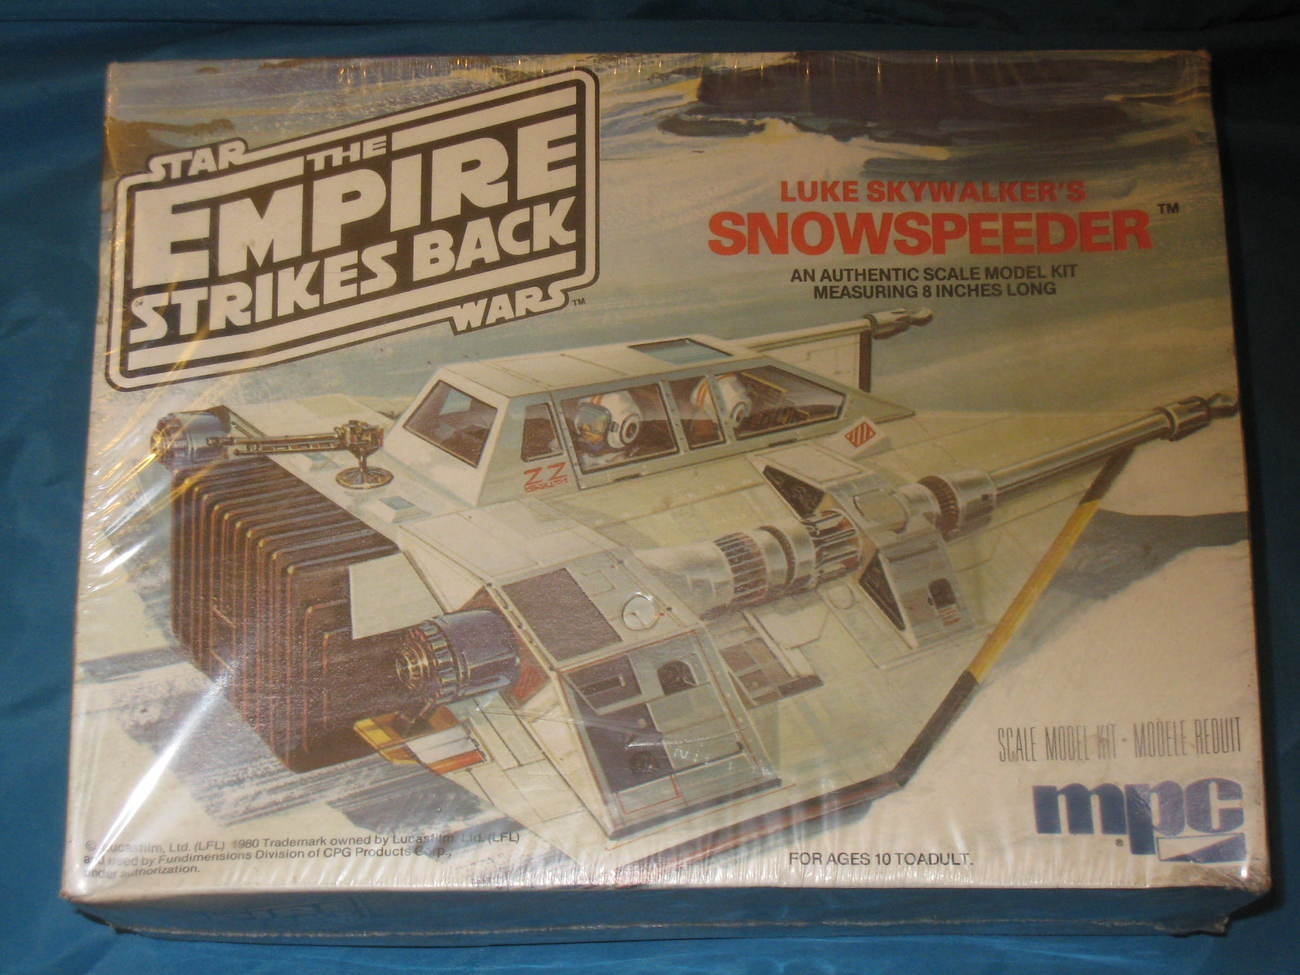 Primary image for Star Wars Empire Strikes Back Snow Speeder, by MPC, 1980. New